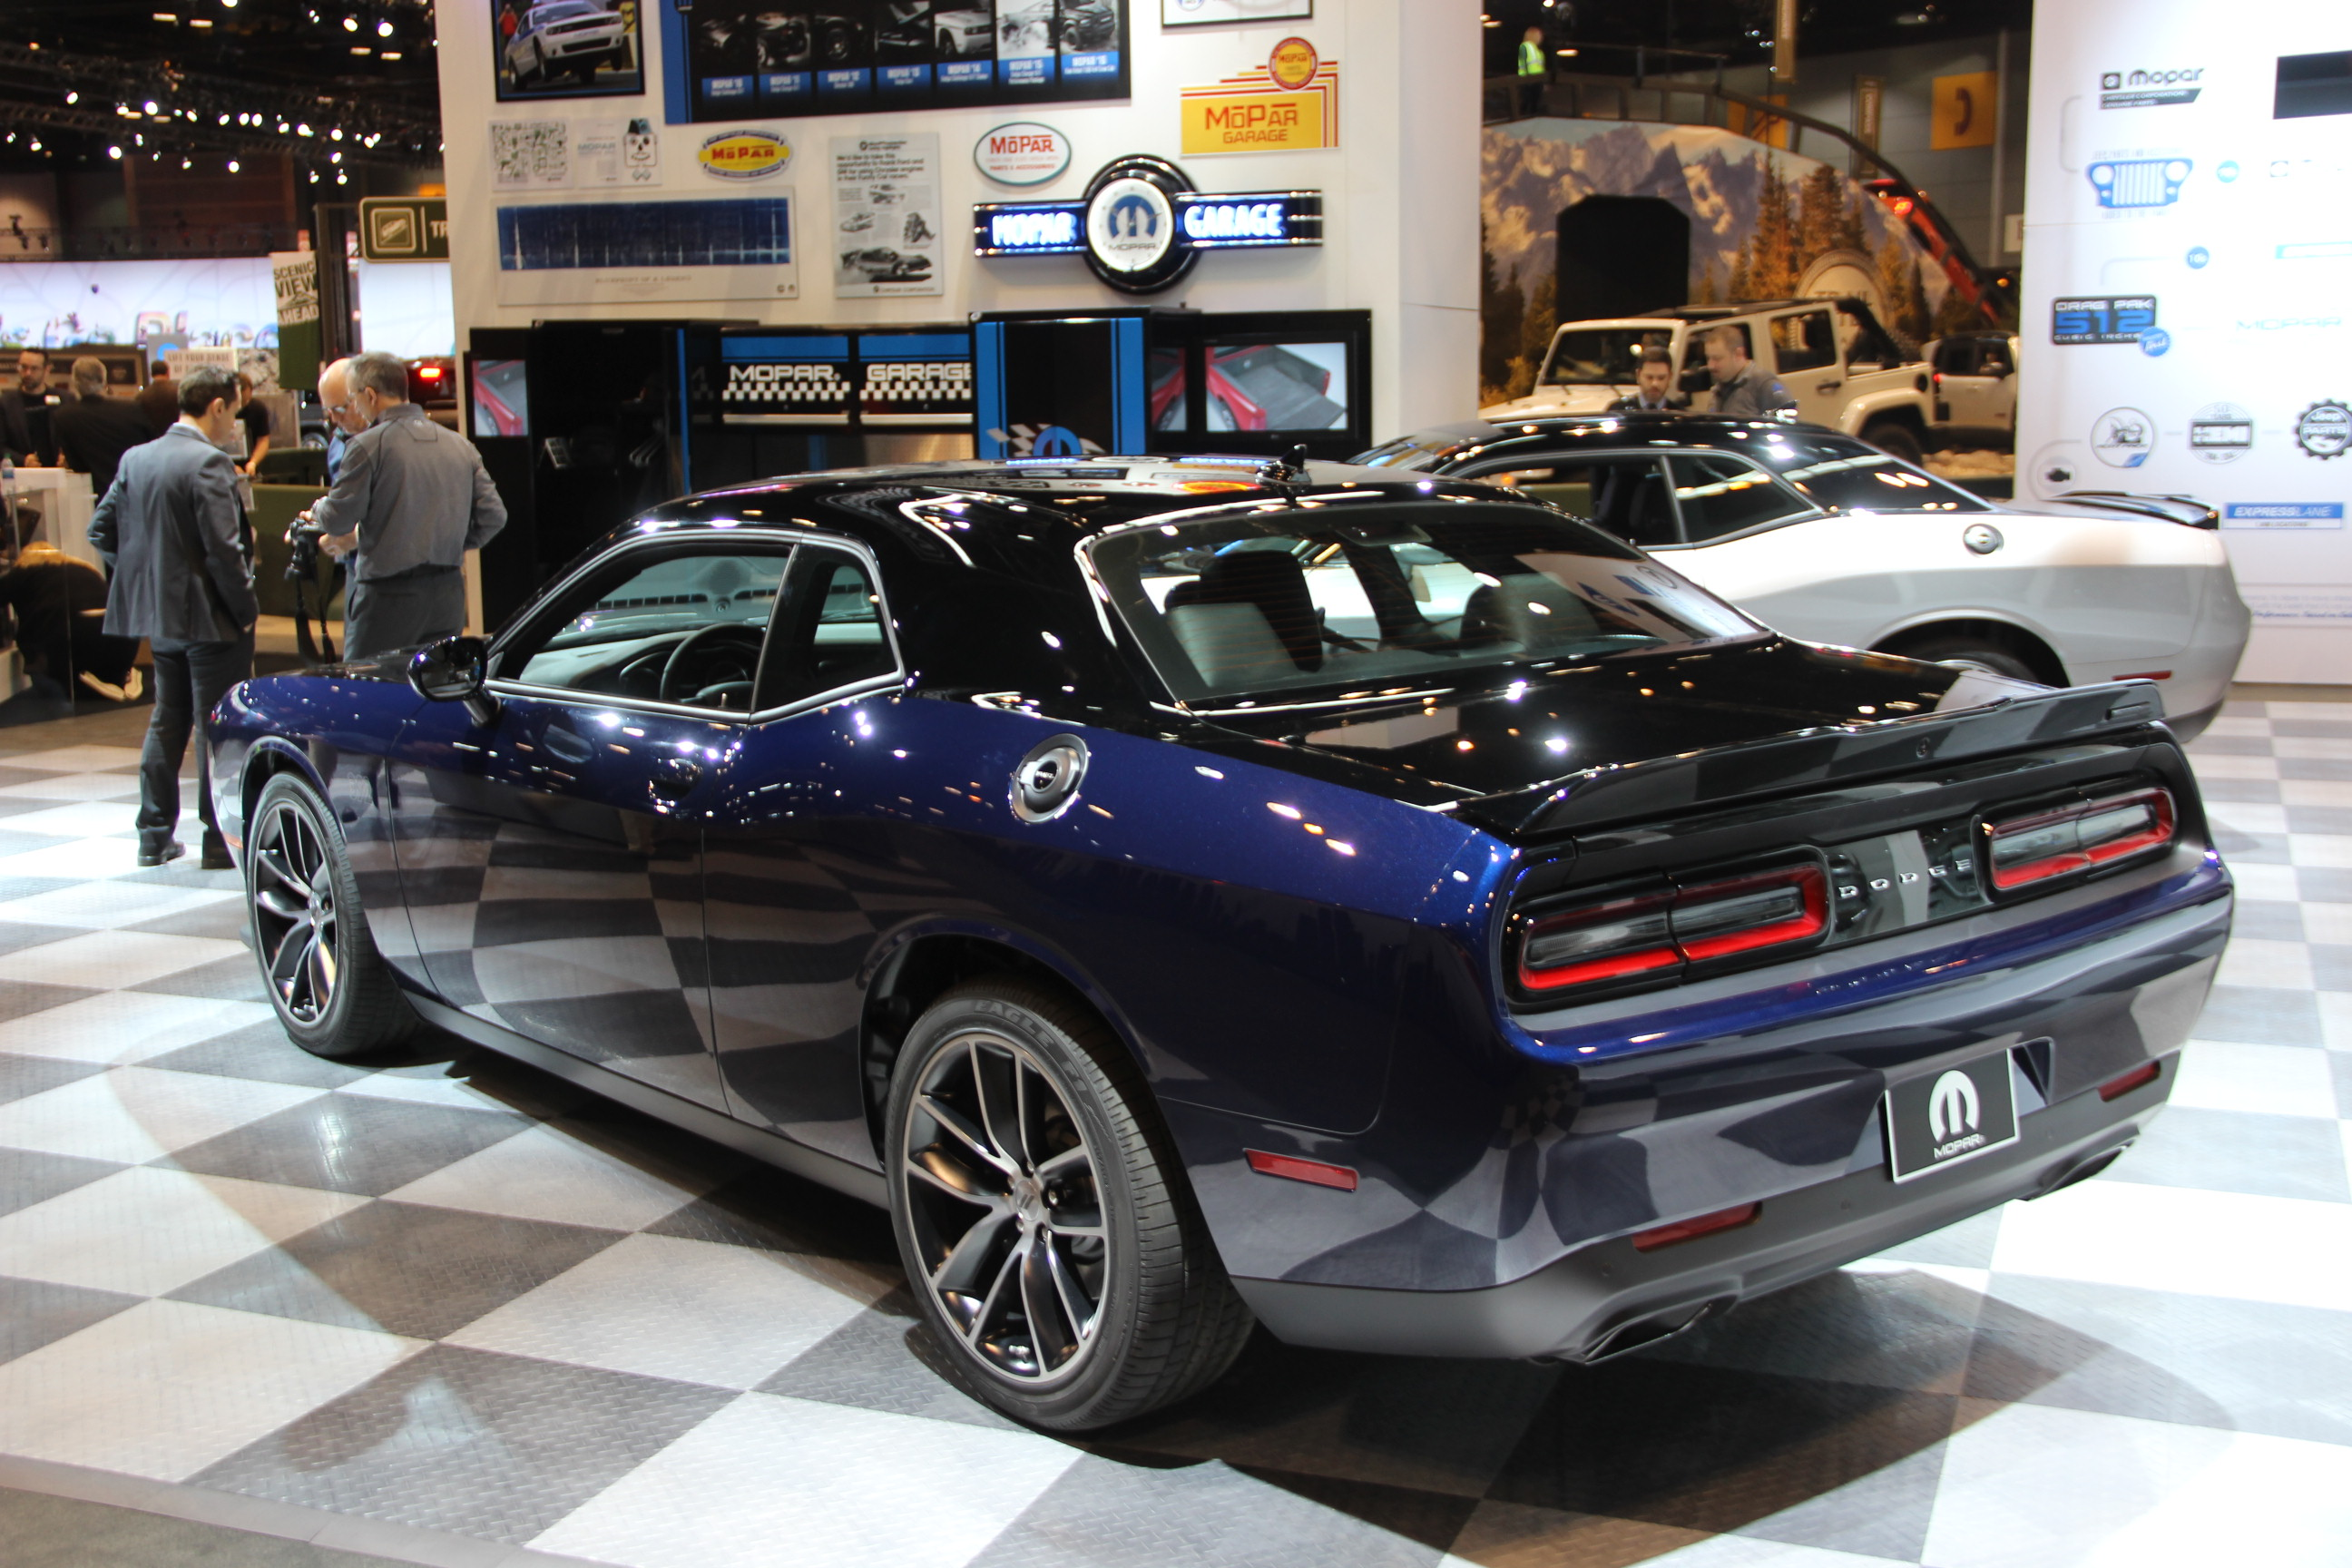 Mopar 17 Dodge Challenger is a Limited Edition 80th Birthday